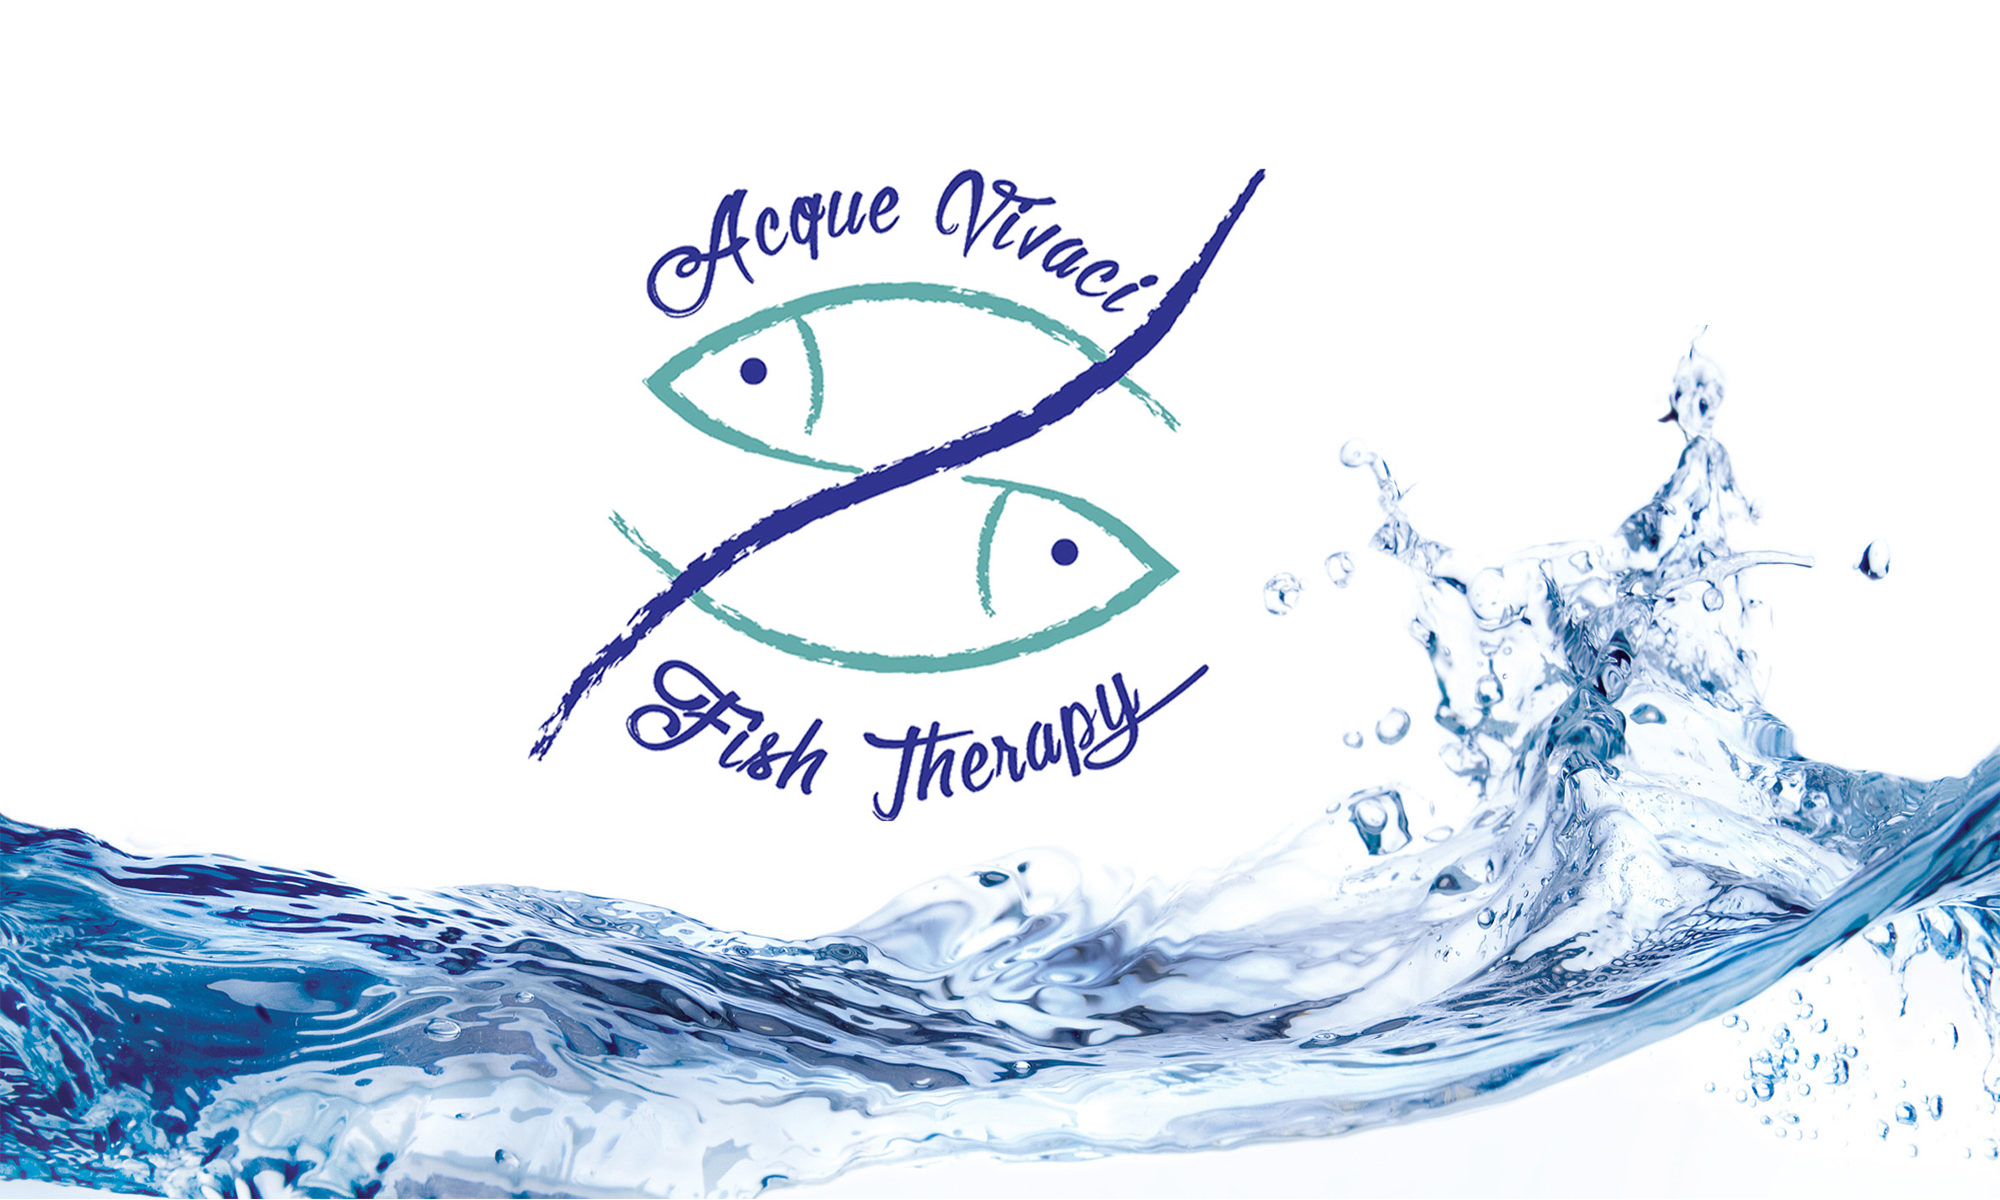 Acque Vivaci Fish Therapy